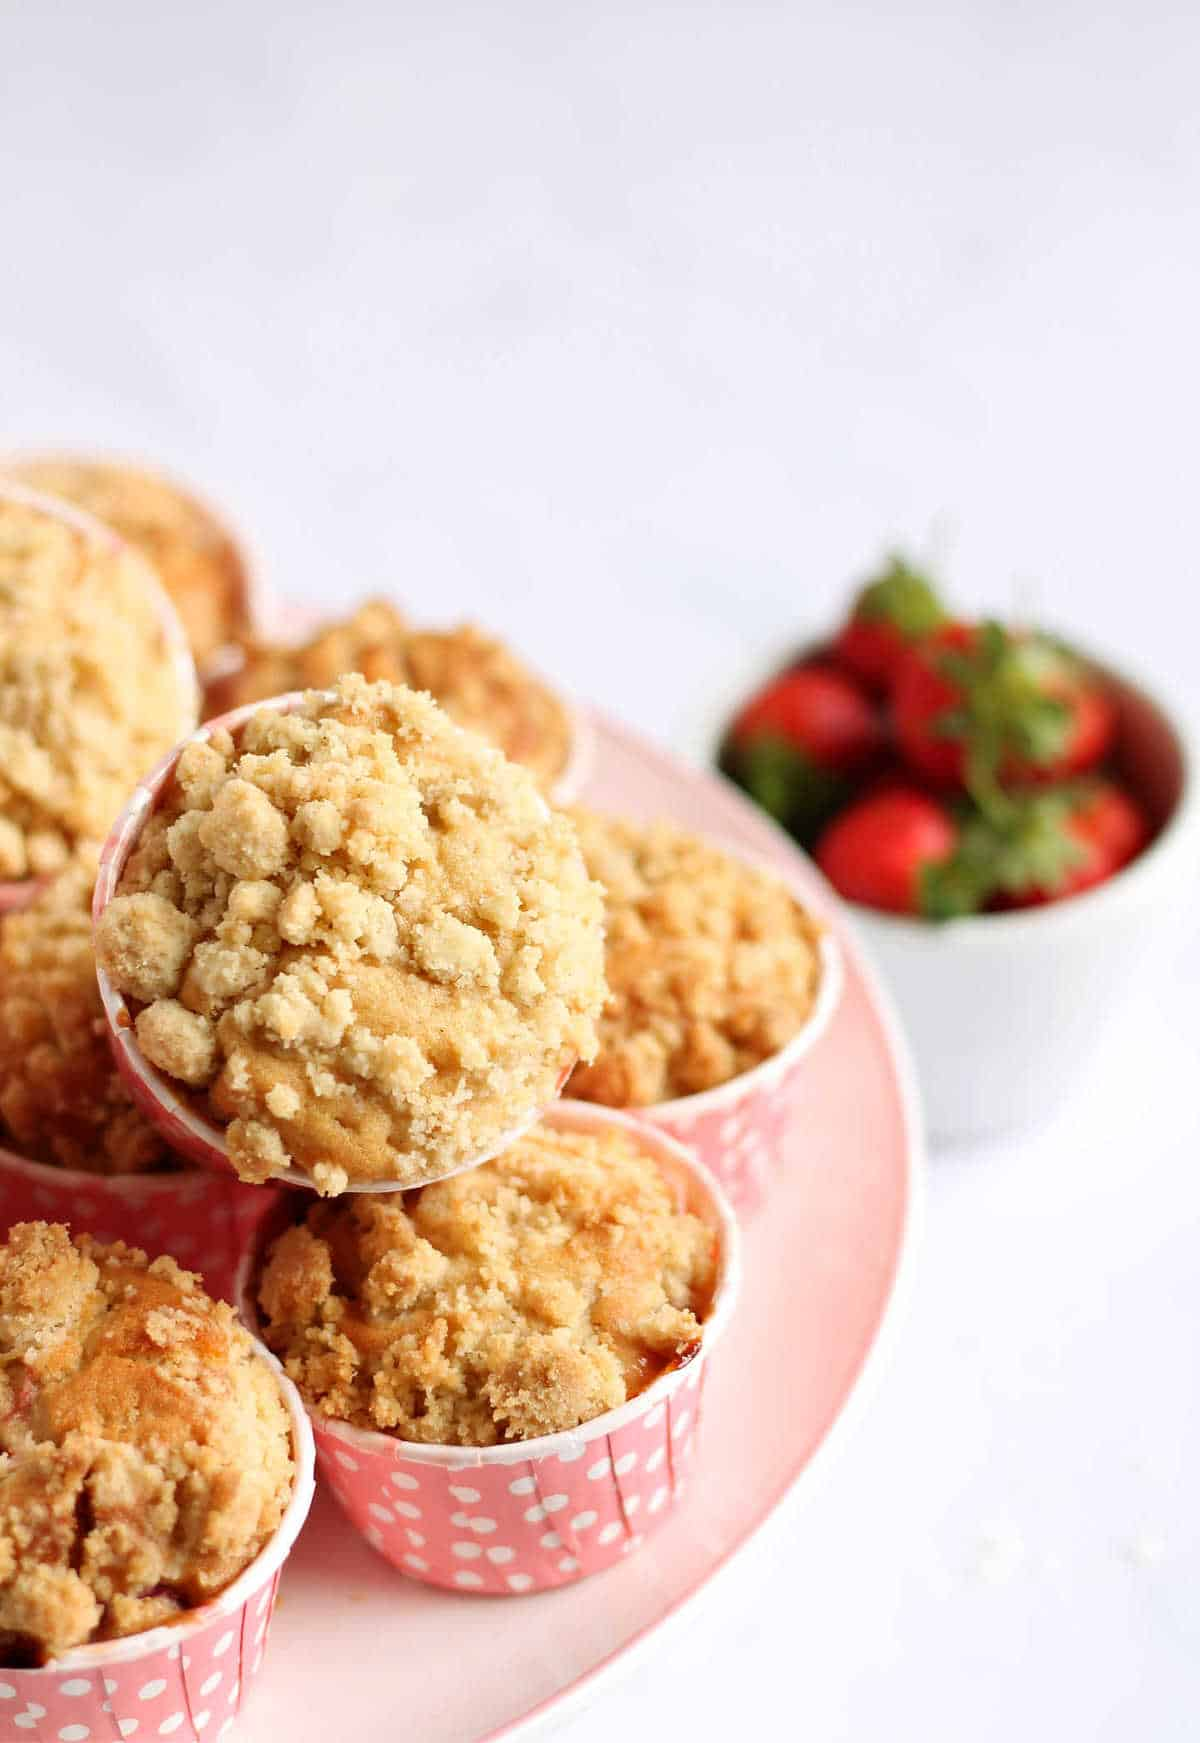 Strawberry muffins on a cake stand.